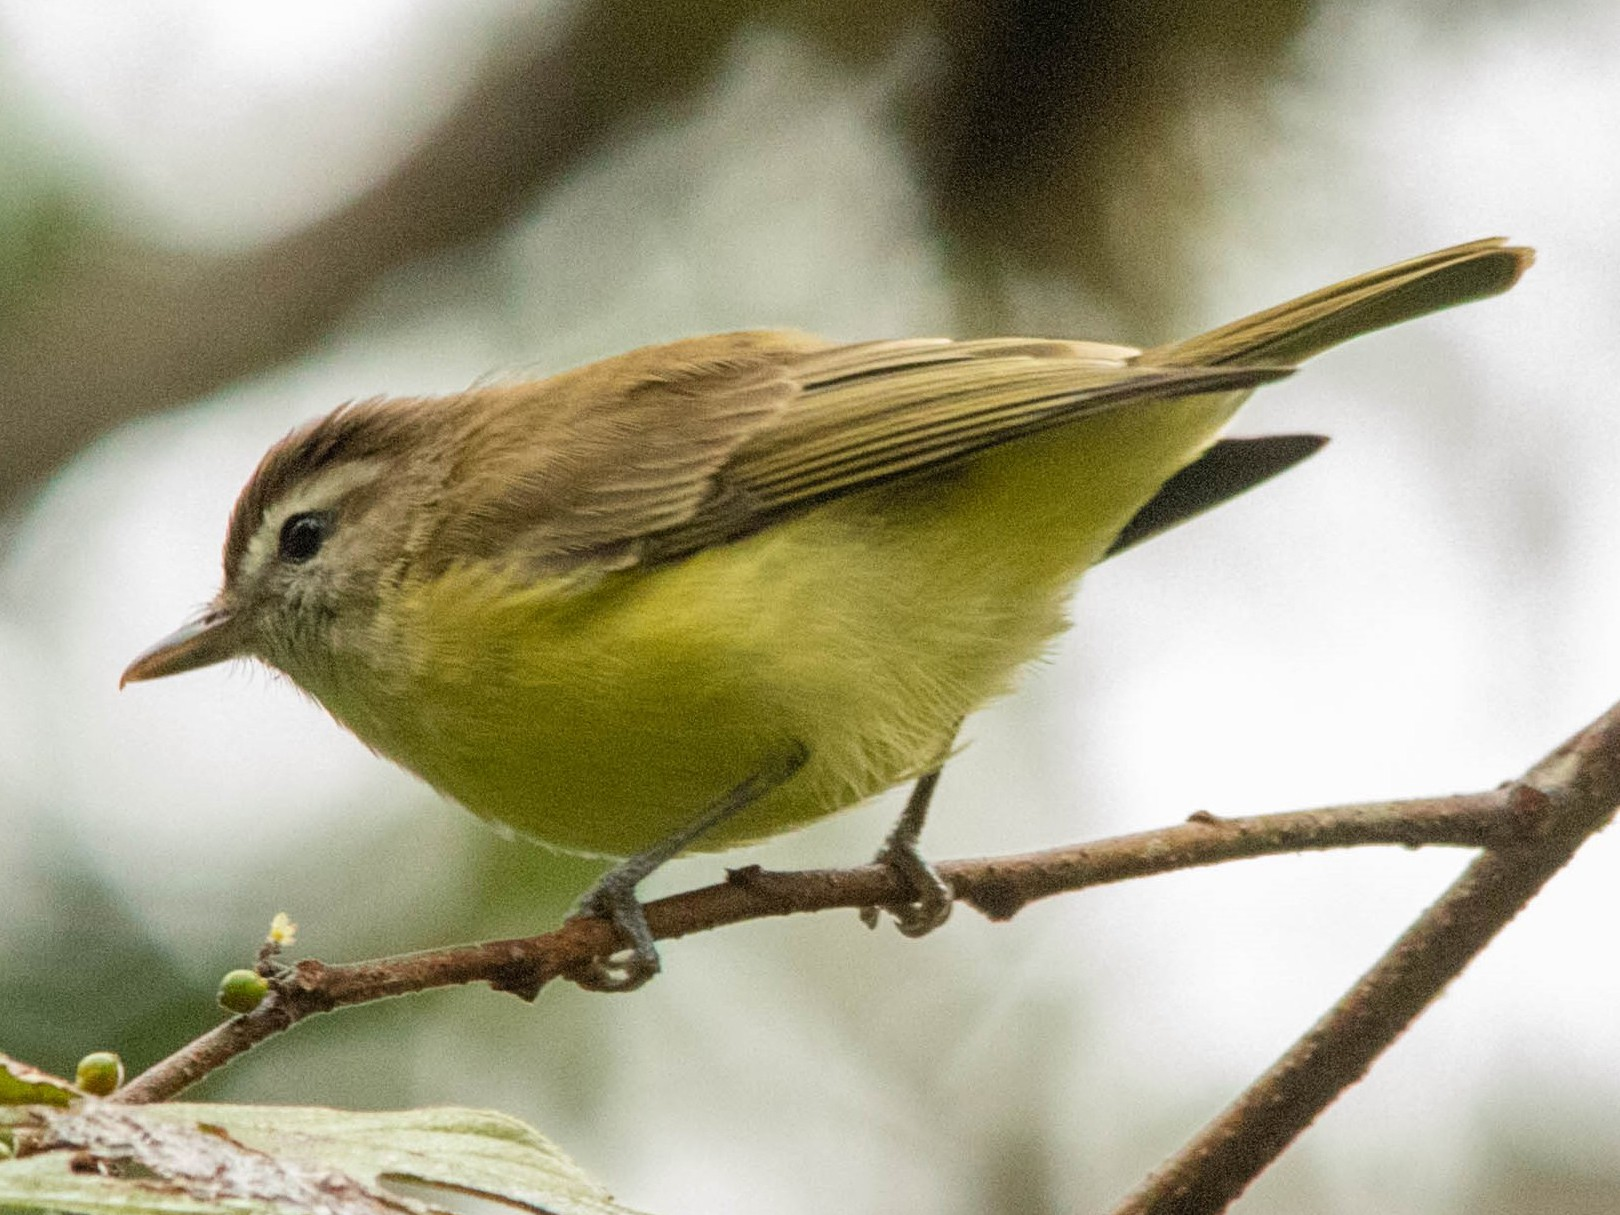 Brown-capped Vireo - Christiana Fattorelli